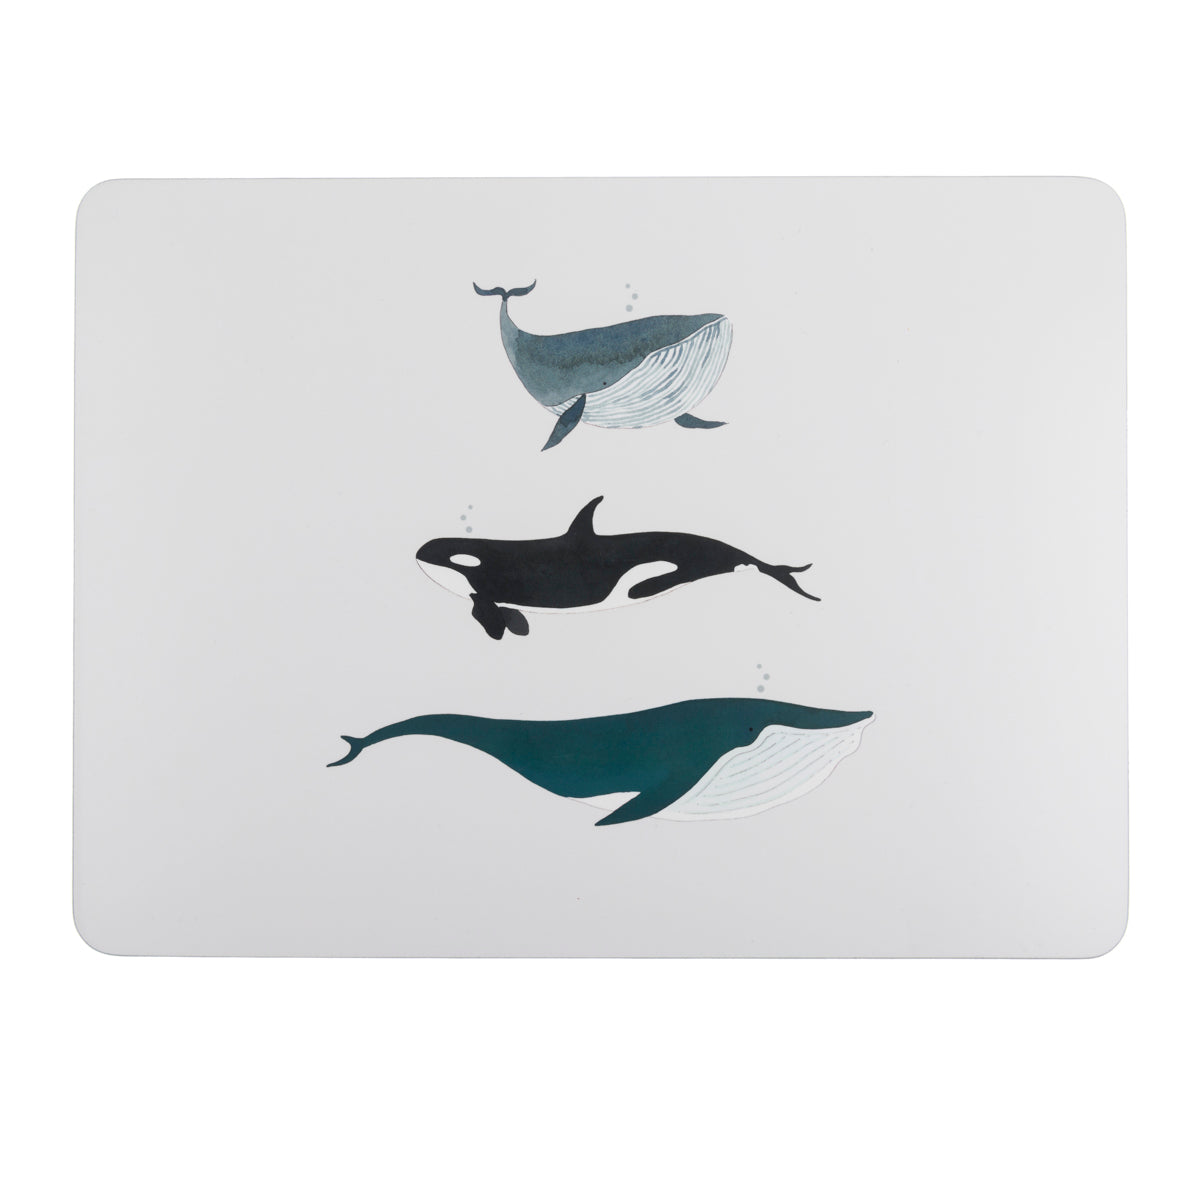 Whales Cork Place mats (set of 4) by Sophie Allport